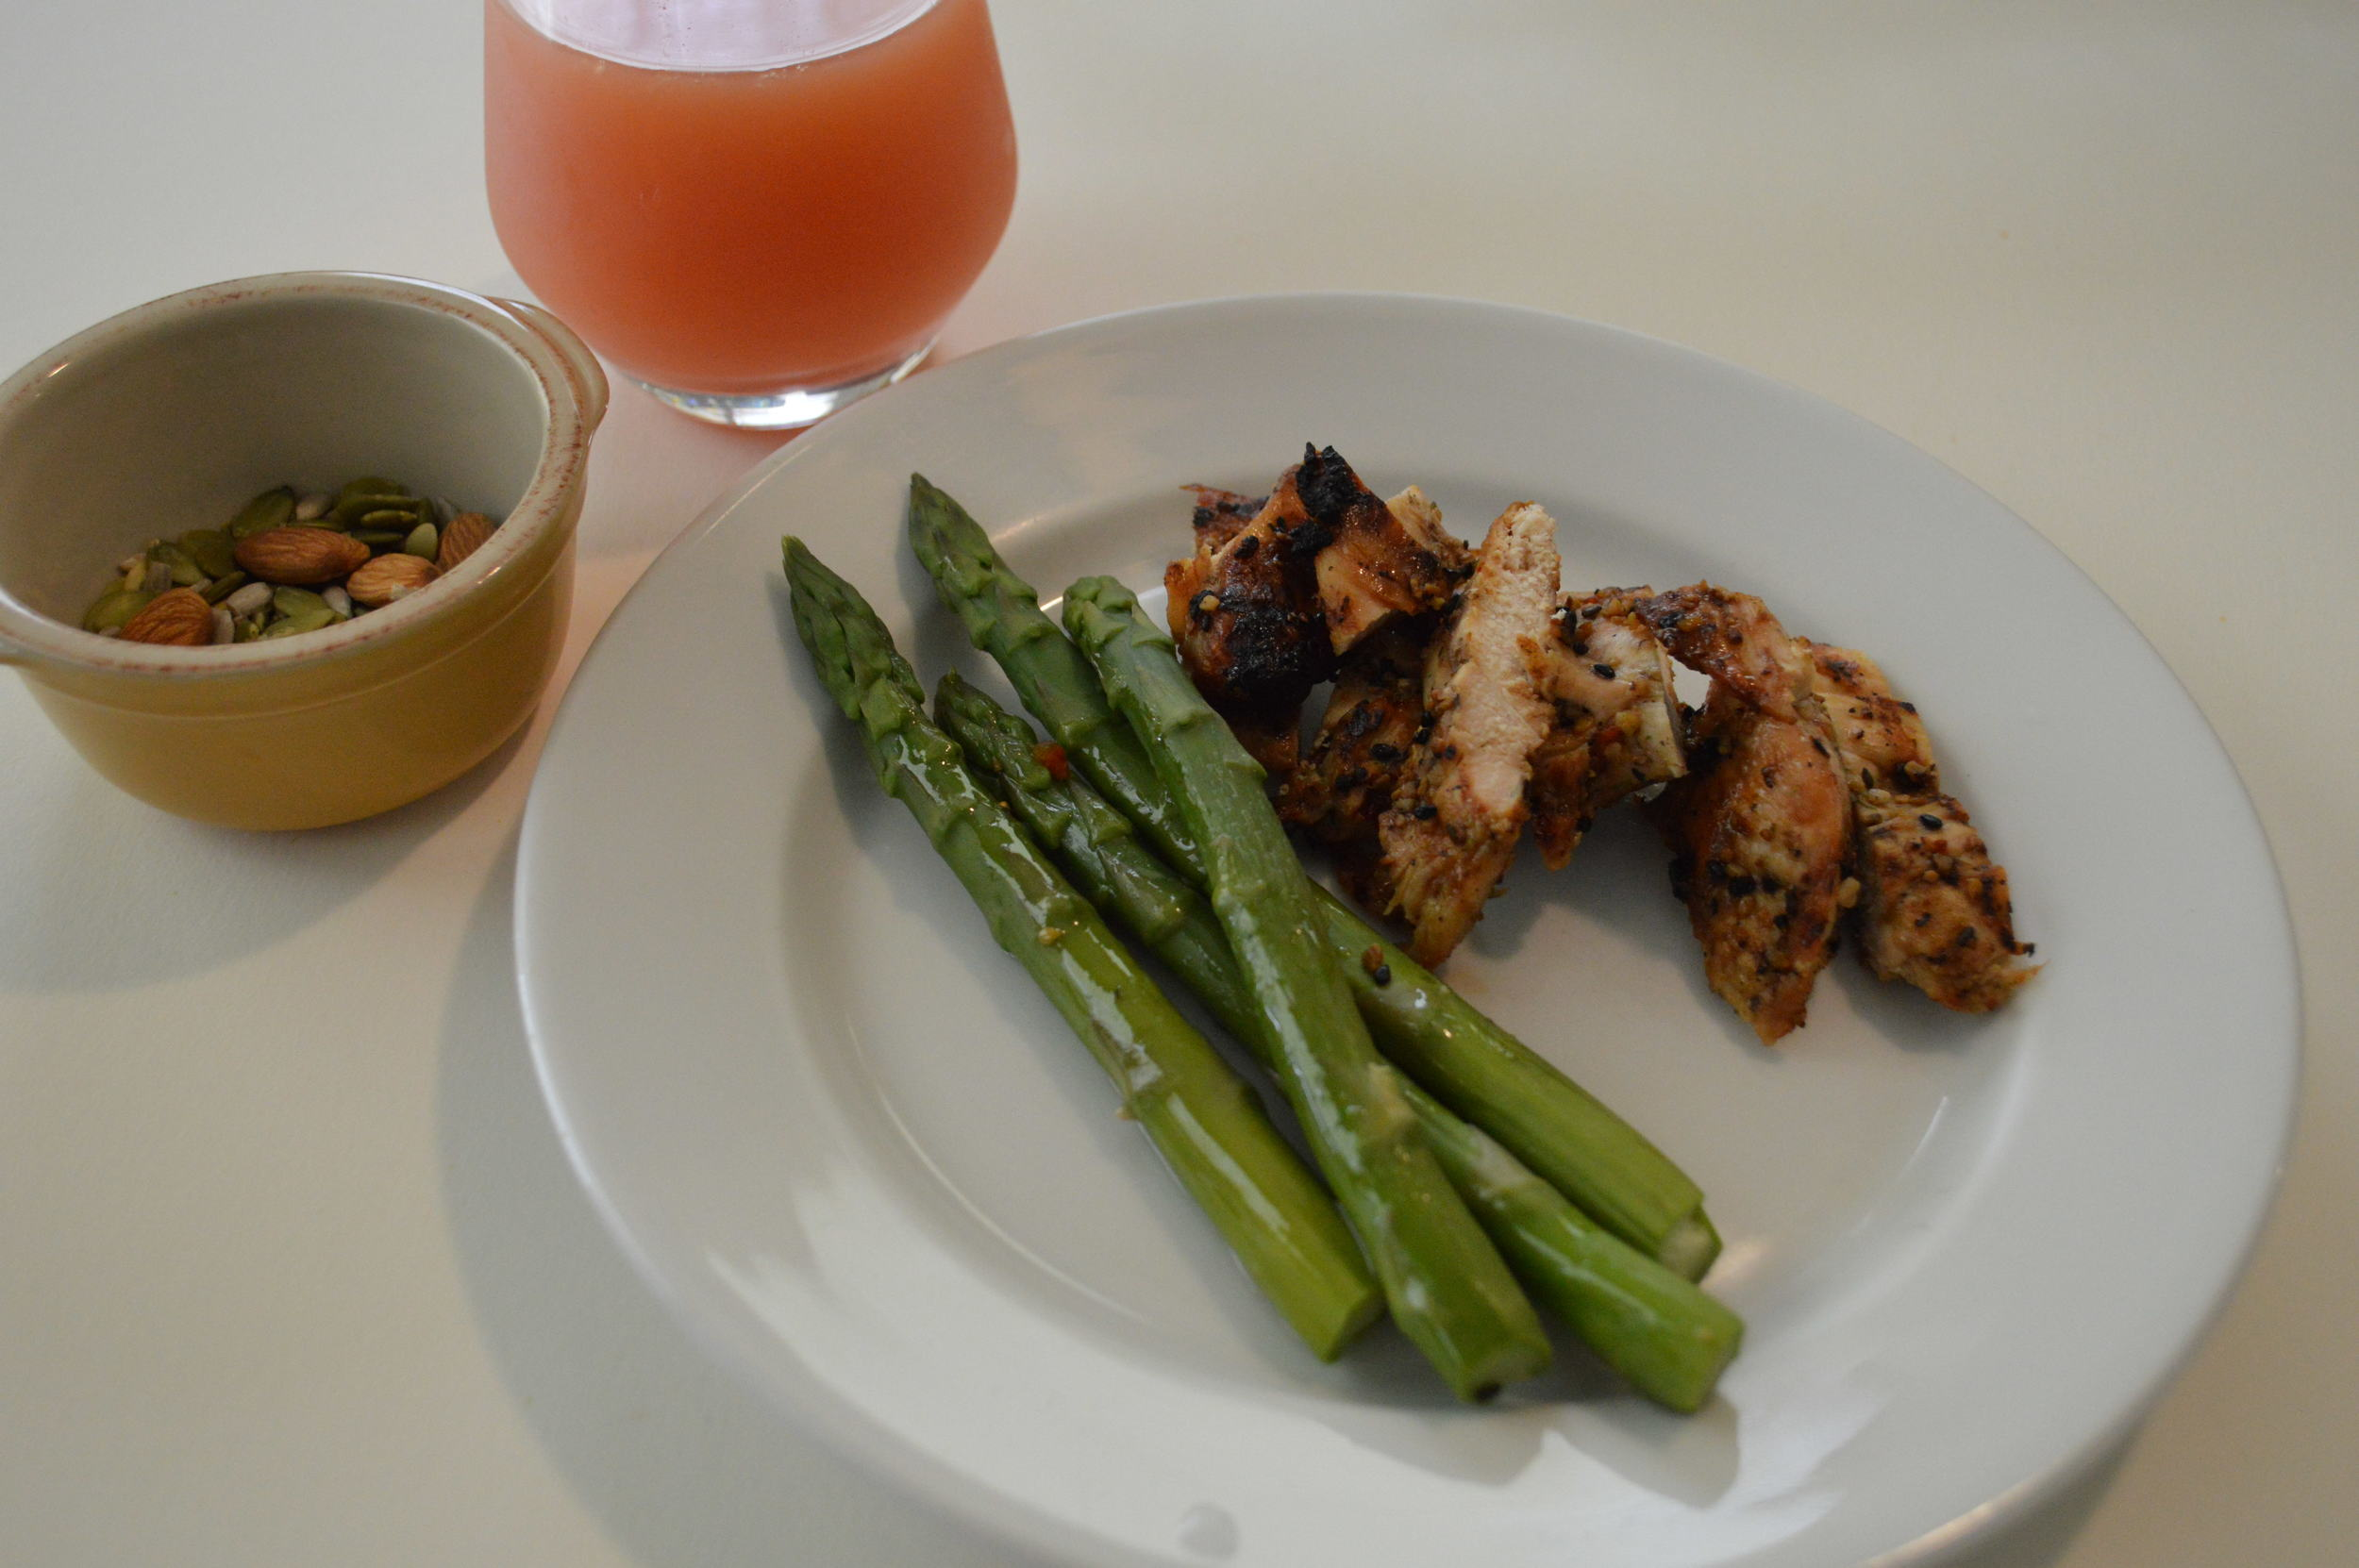 Chicken, Asparagus & Mixed Nuts